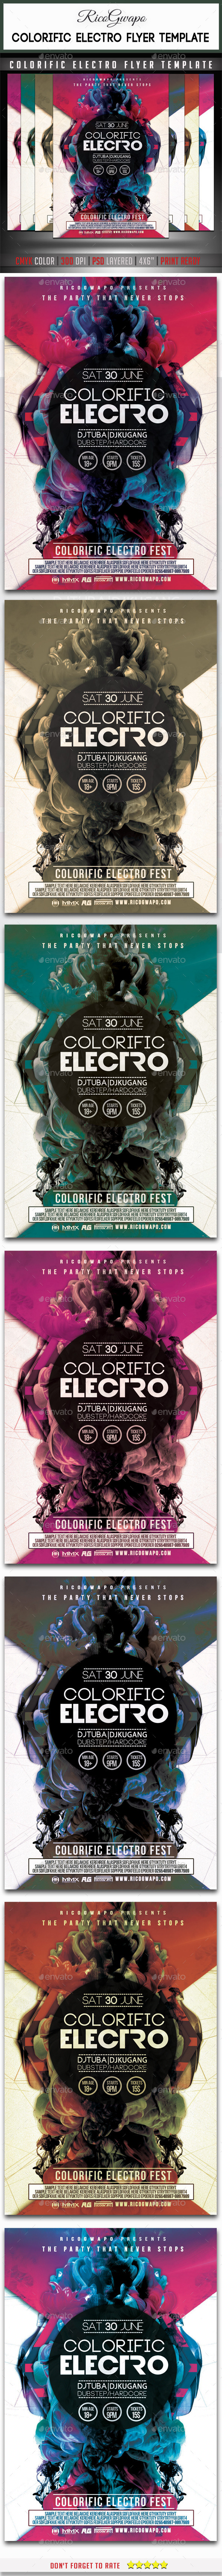 Colorific Electro Flyer Template - Clubs & Parties Events